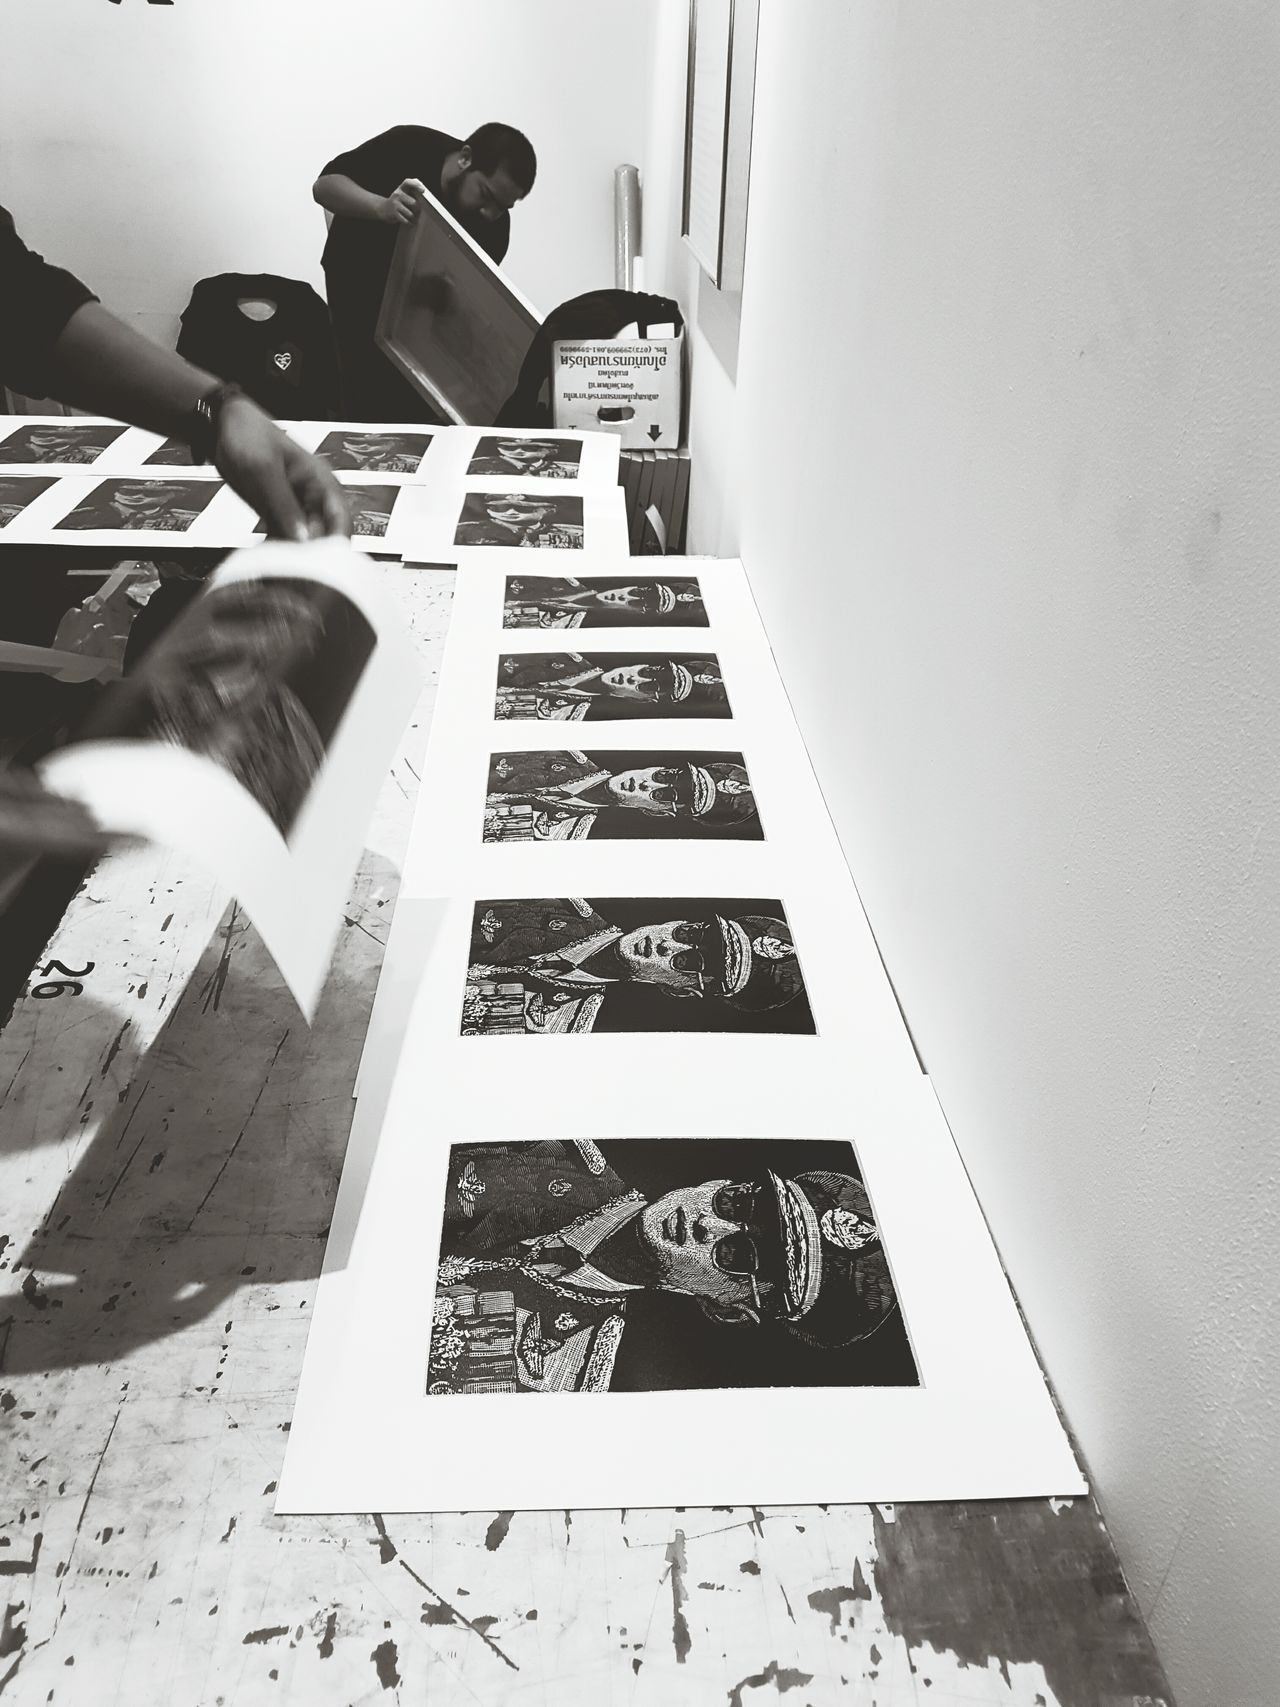 Documentary Thai Mourning Their Beloved King Ardel Gallery Of Modern Art Thailand King Of Thailand Prints Fine Art Photography ArtWork Black And White Artprint Artist Craft Art Thai Fineart My Year My View The Photojournalist - 2017 EyeEm Awards